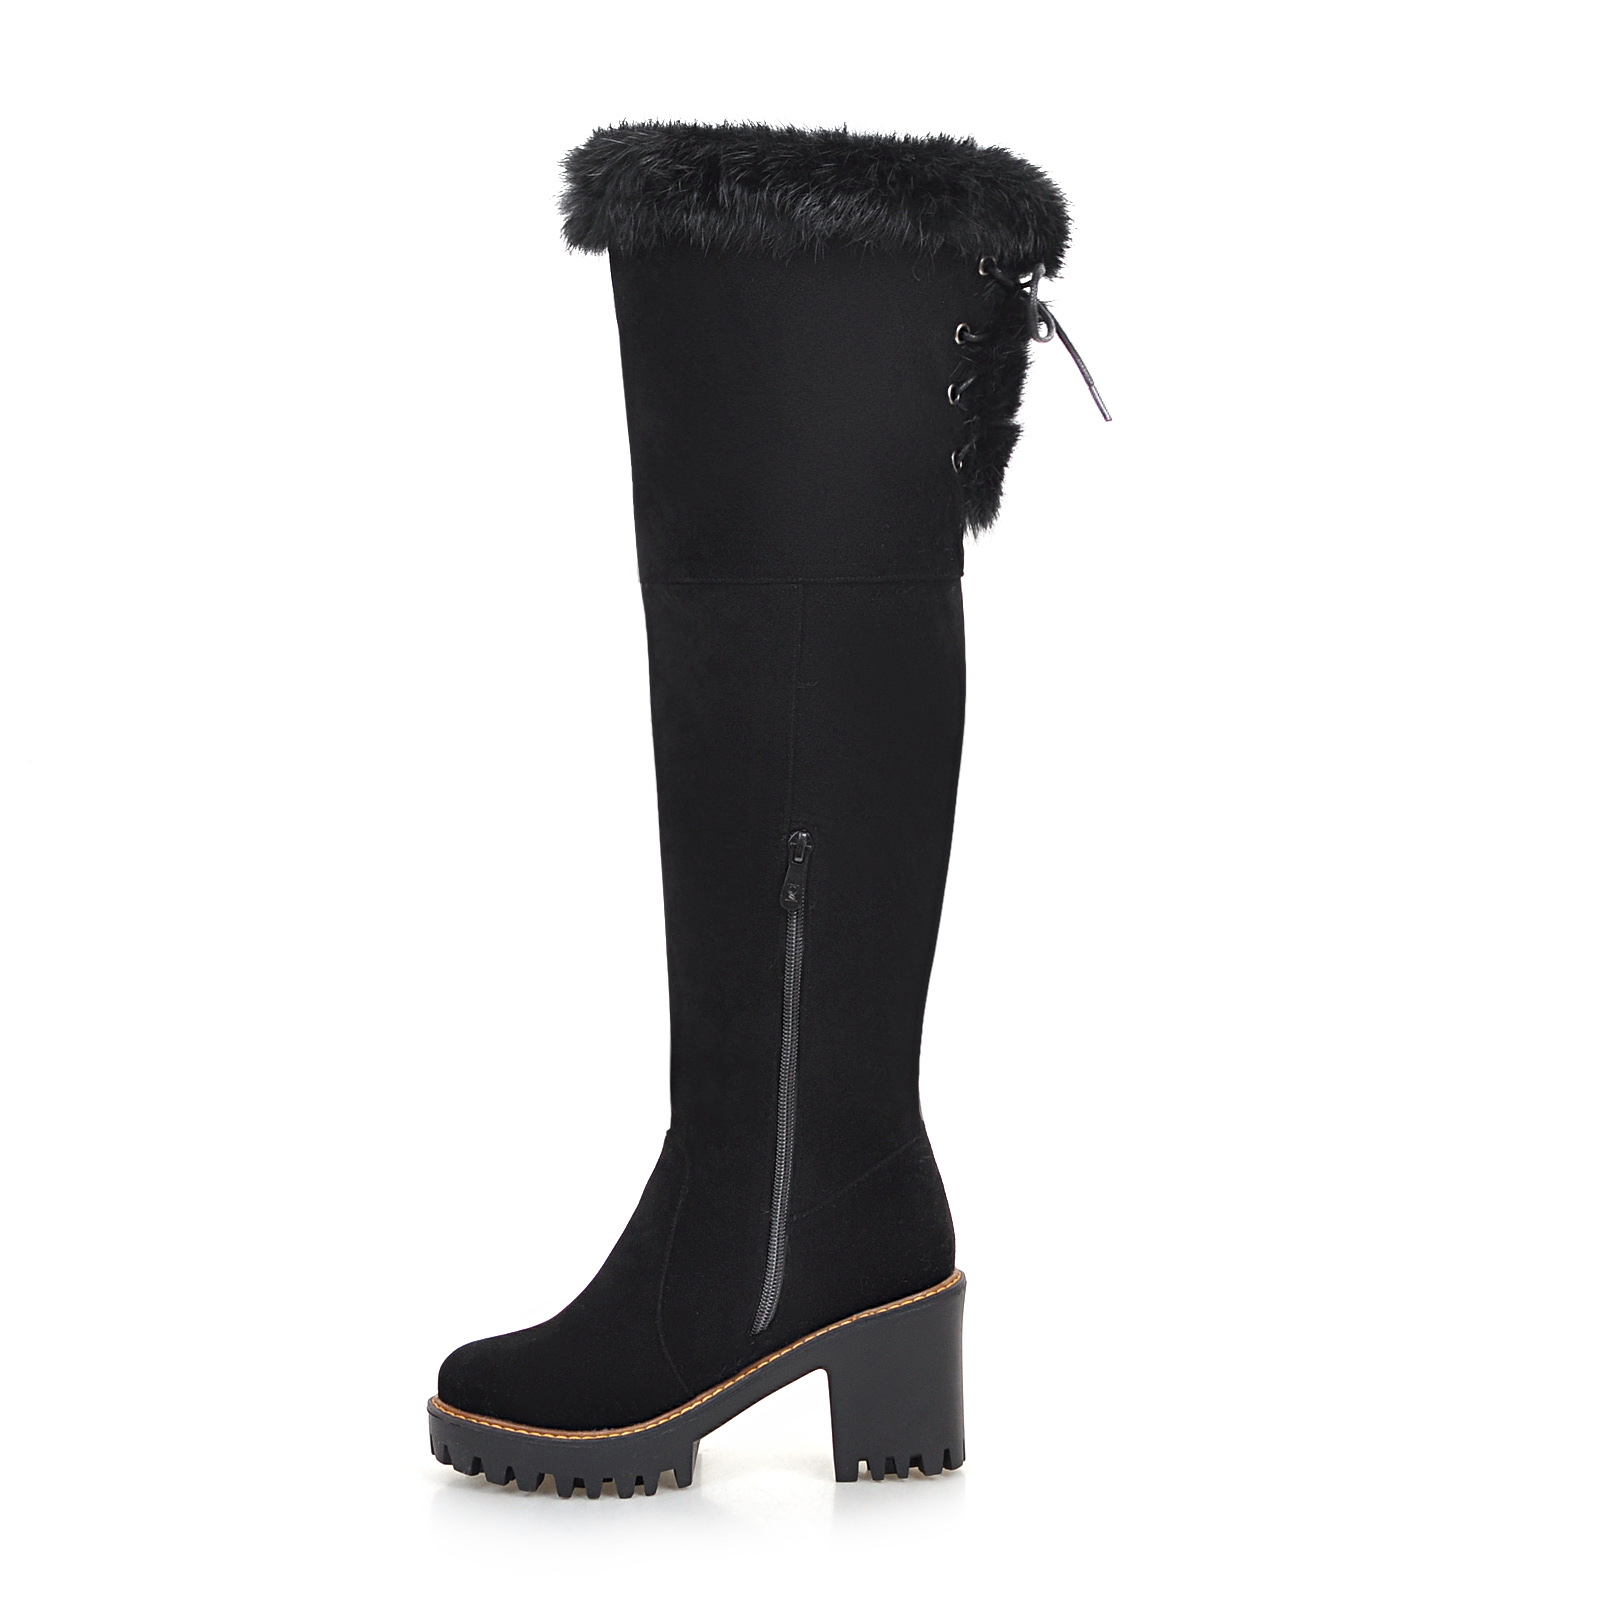 b9da356ff9d 2019 New Women Over The Knee High Snow Boots Woman 8cm Thick High ...